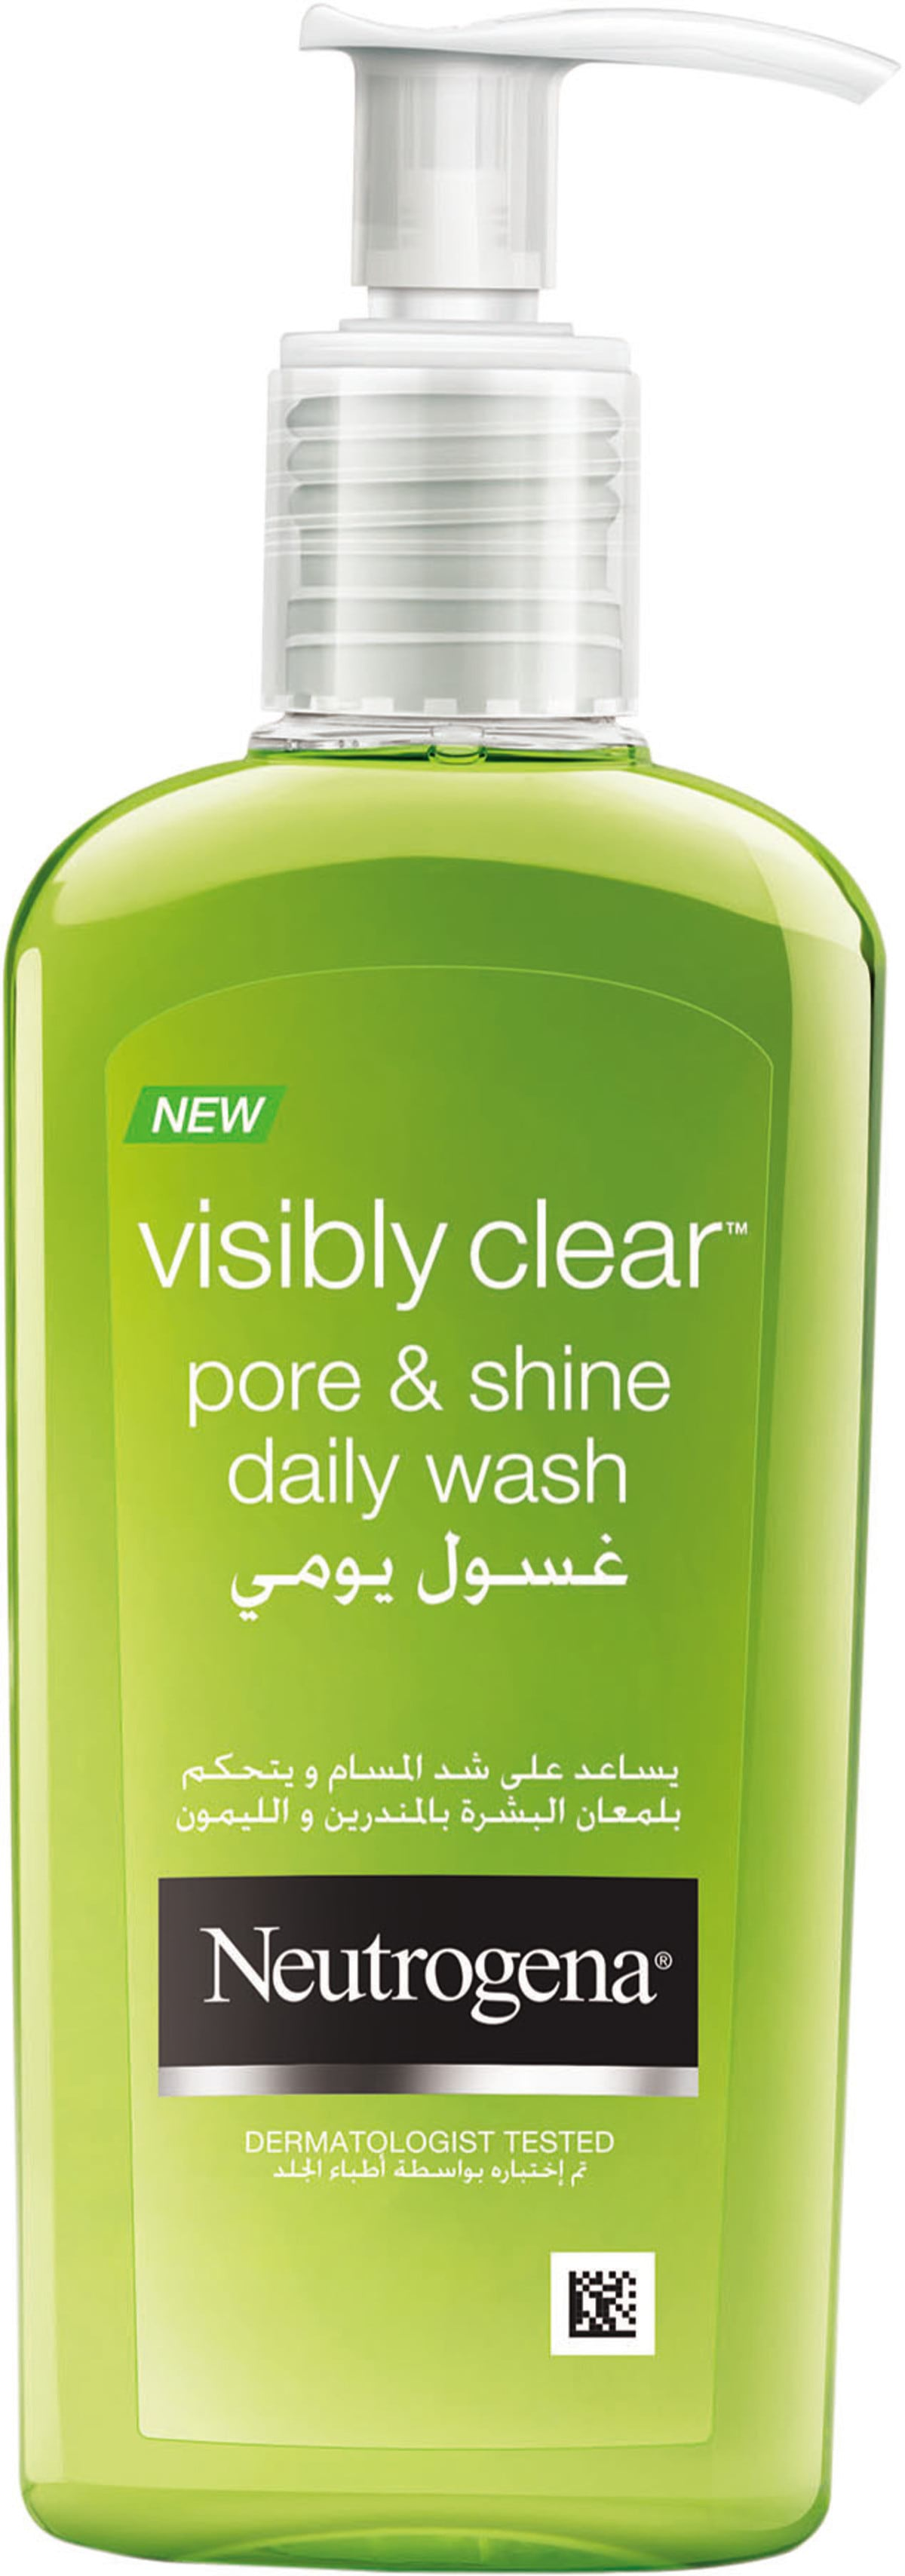 Neutrogena_VisiblyClearPore&ShineFacialWash_AED44.86